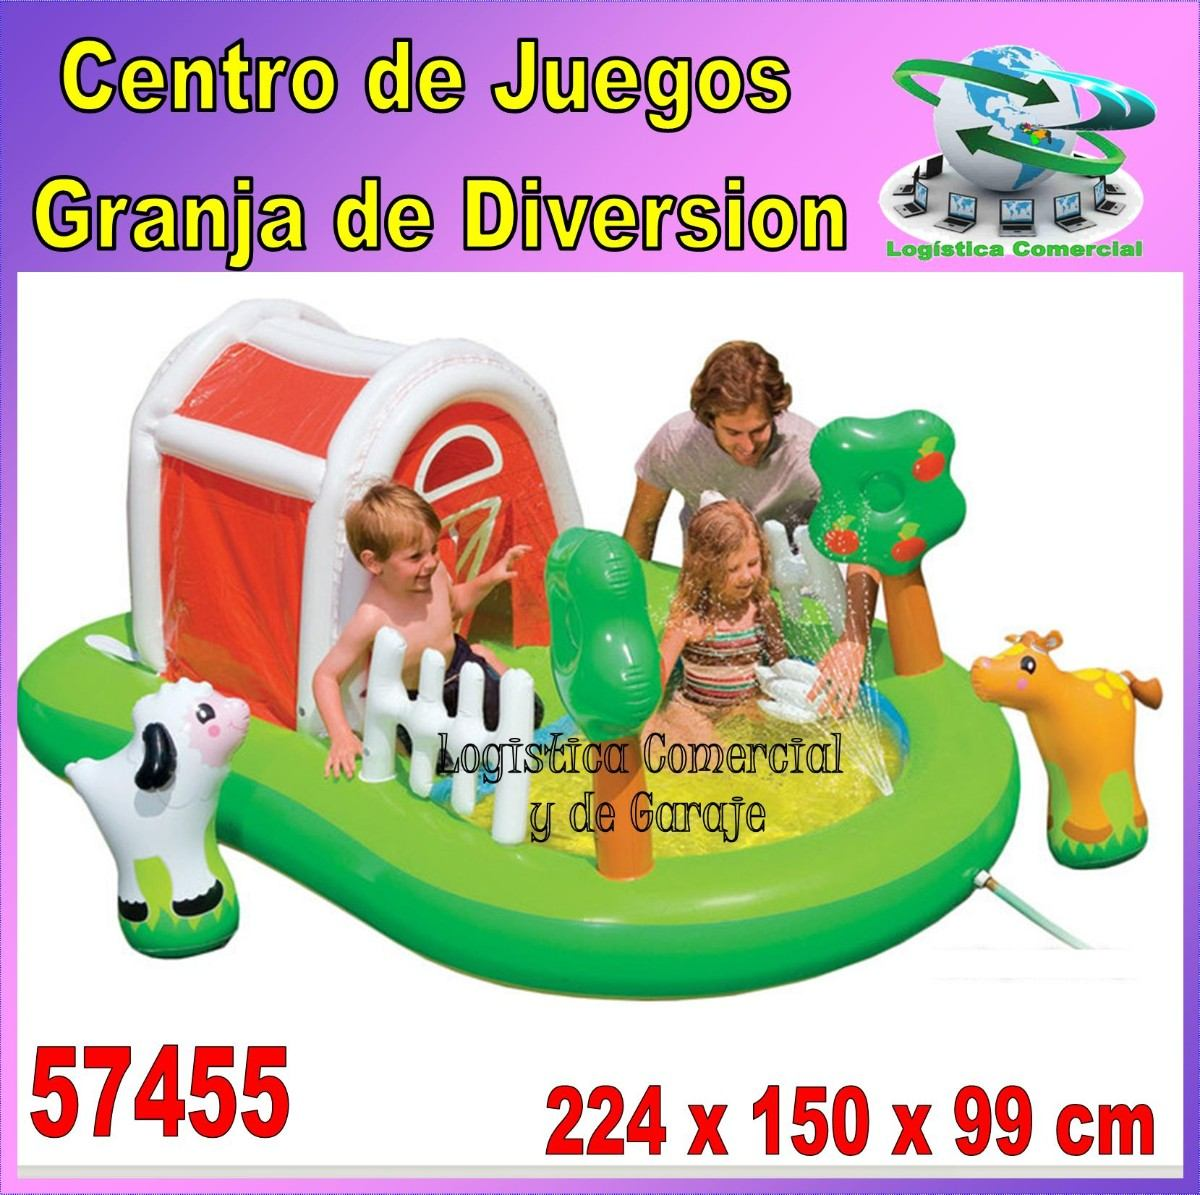 Piscina inflable centro juego accesorios granja intex for Piscina inflable intex